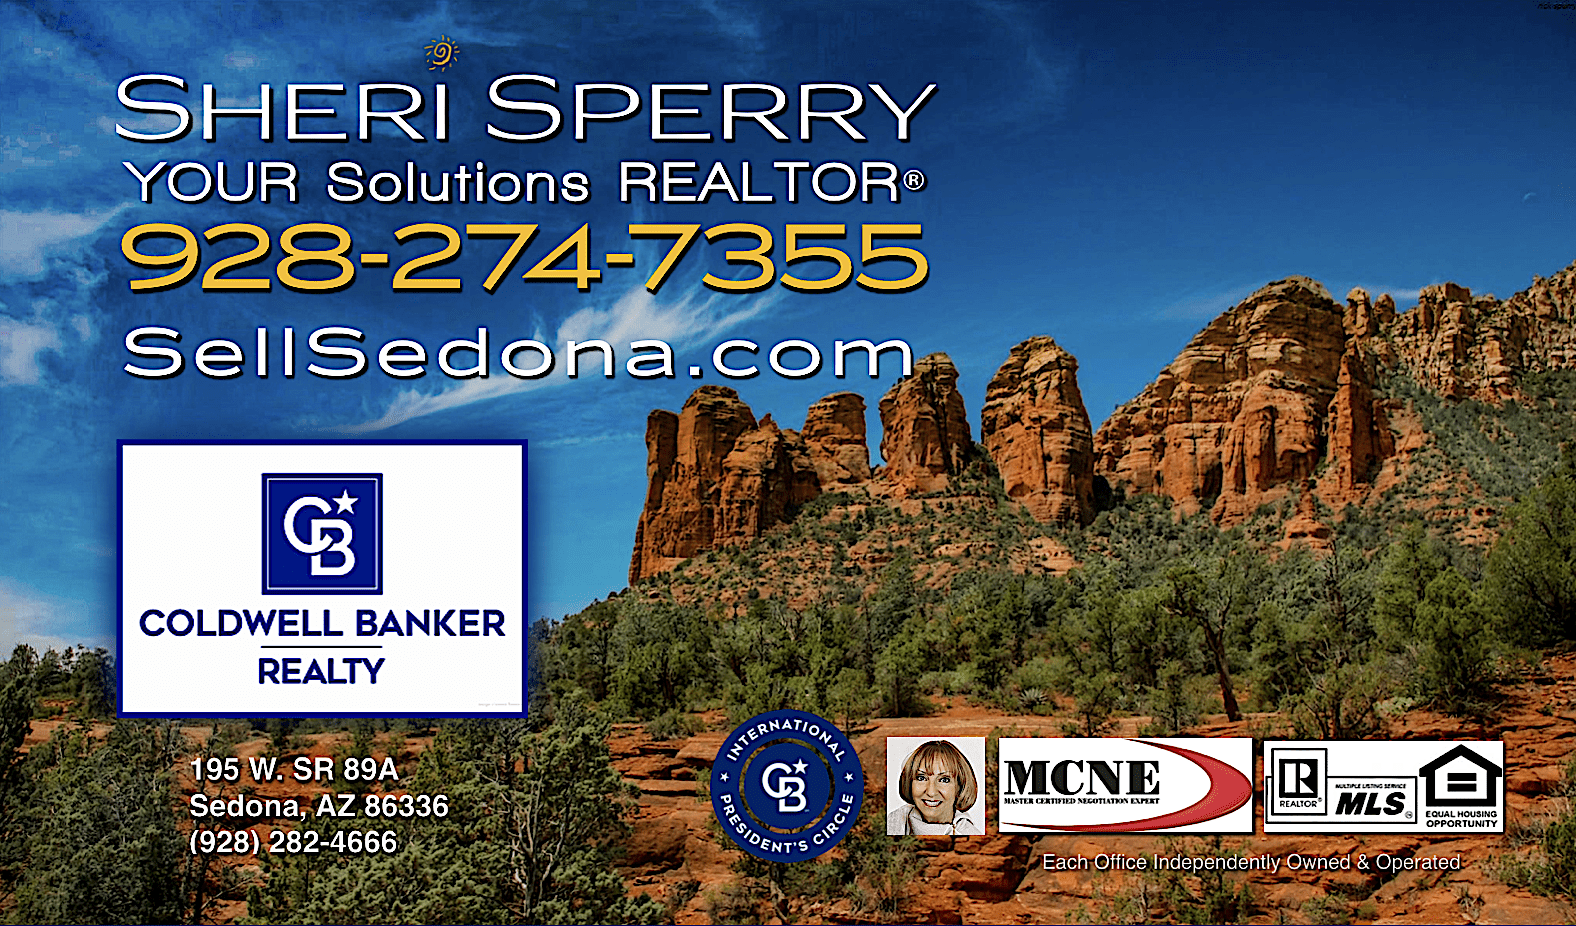 Sheri Sperry Coldwell Banker Realty Sales Professional